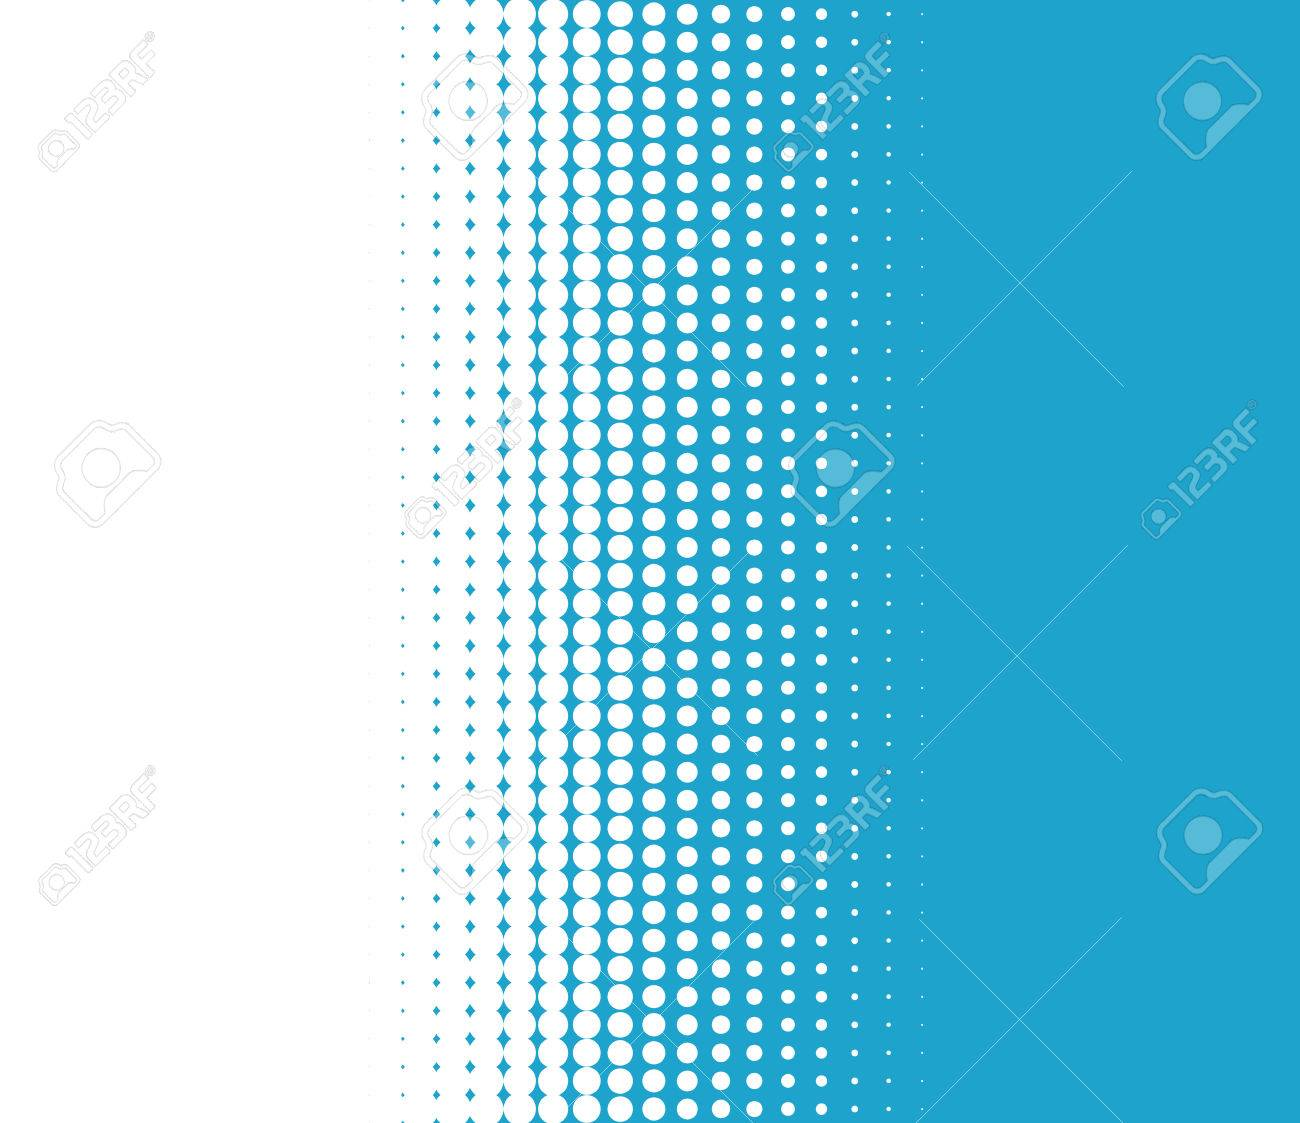 Background image transition - Background Transition Of Dots With Colors Turquoise And White Stock Photo 42924025